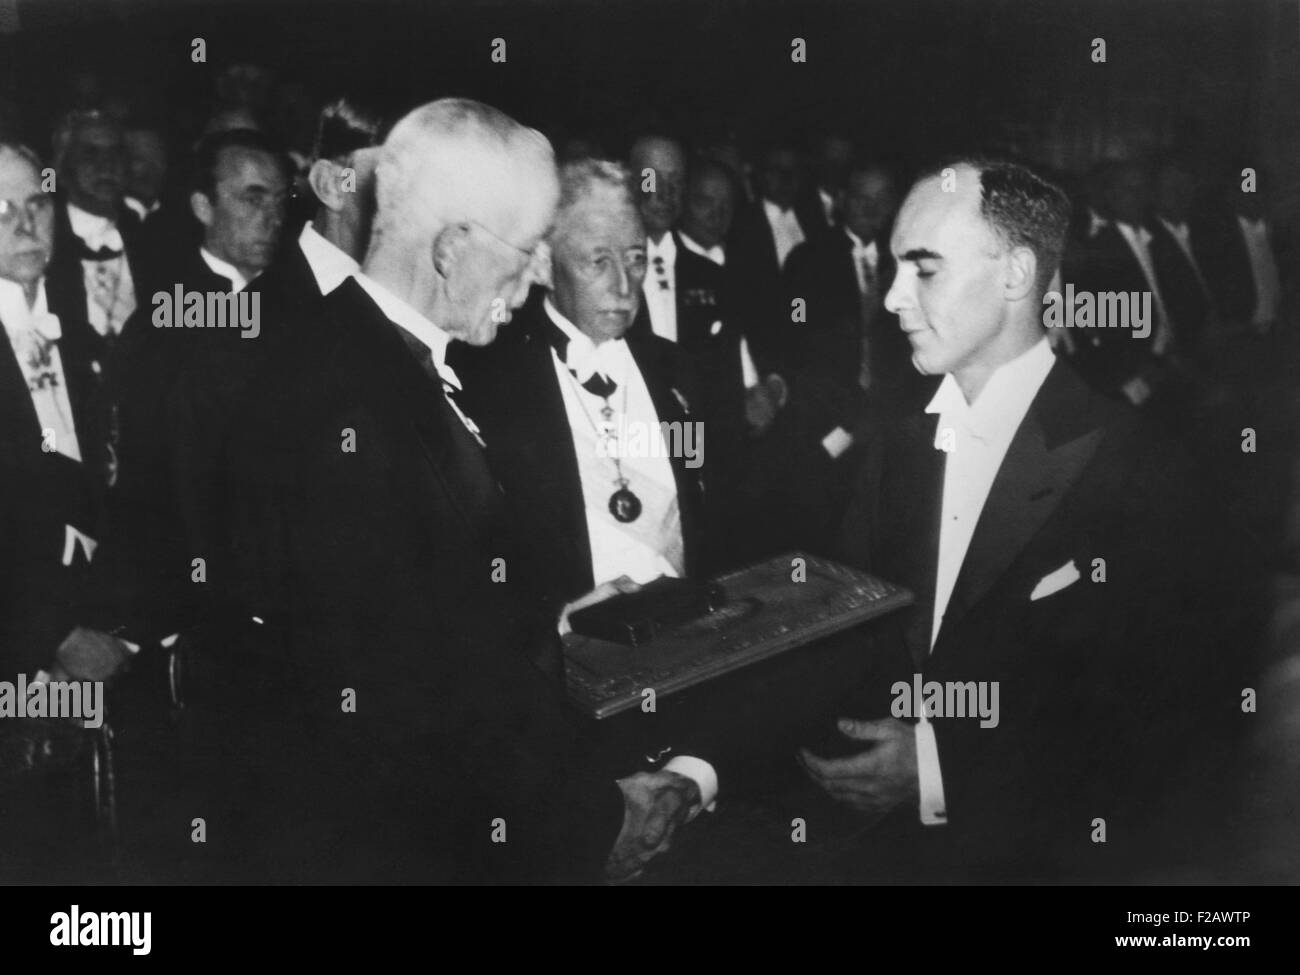 Dr. Carl Anderson, received the 1931 Nobel Prize in Physics from King Gustav of Sweden. Dec. 25, 1936. He won for - Stock Image